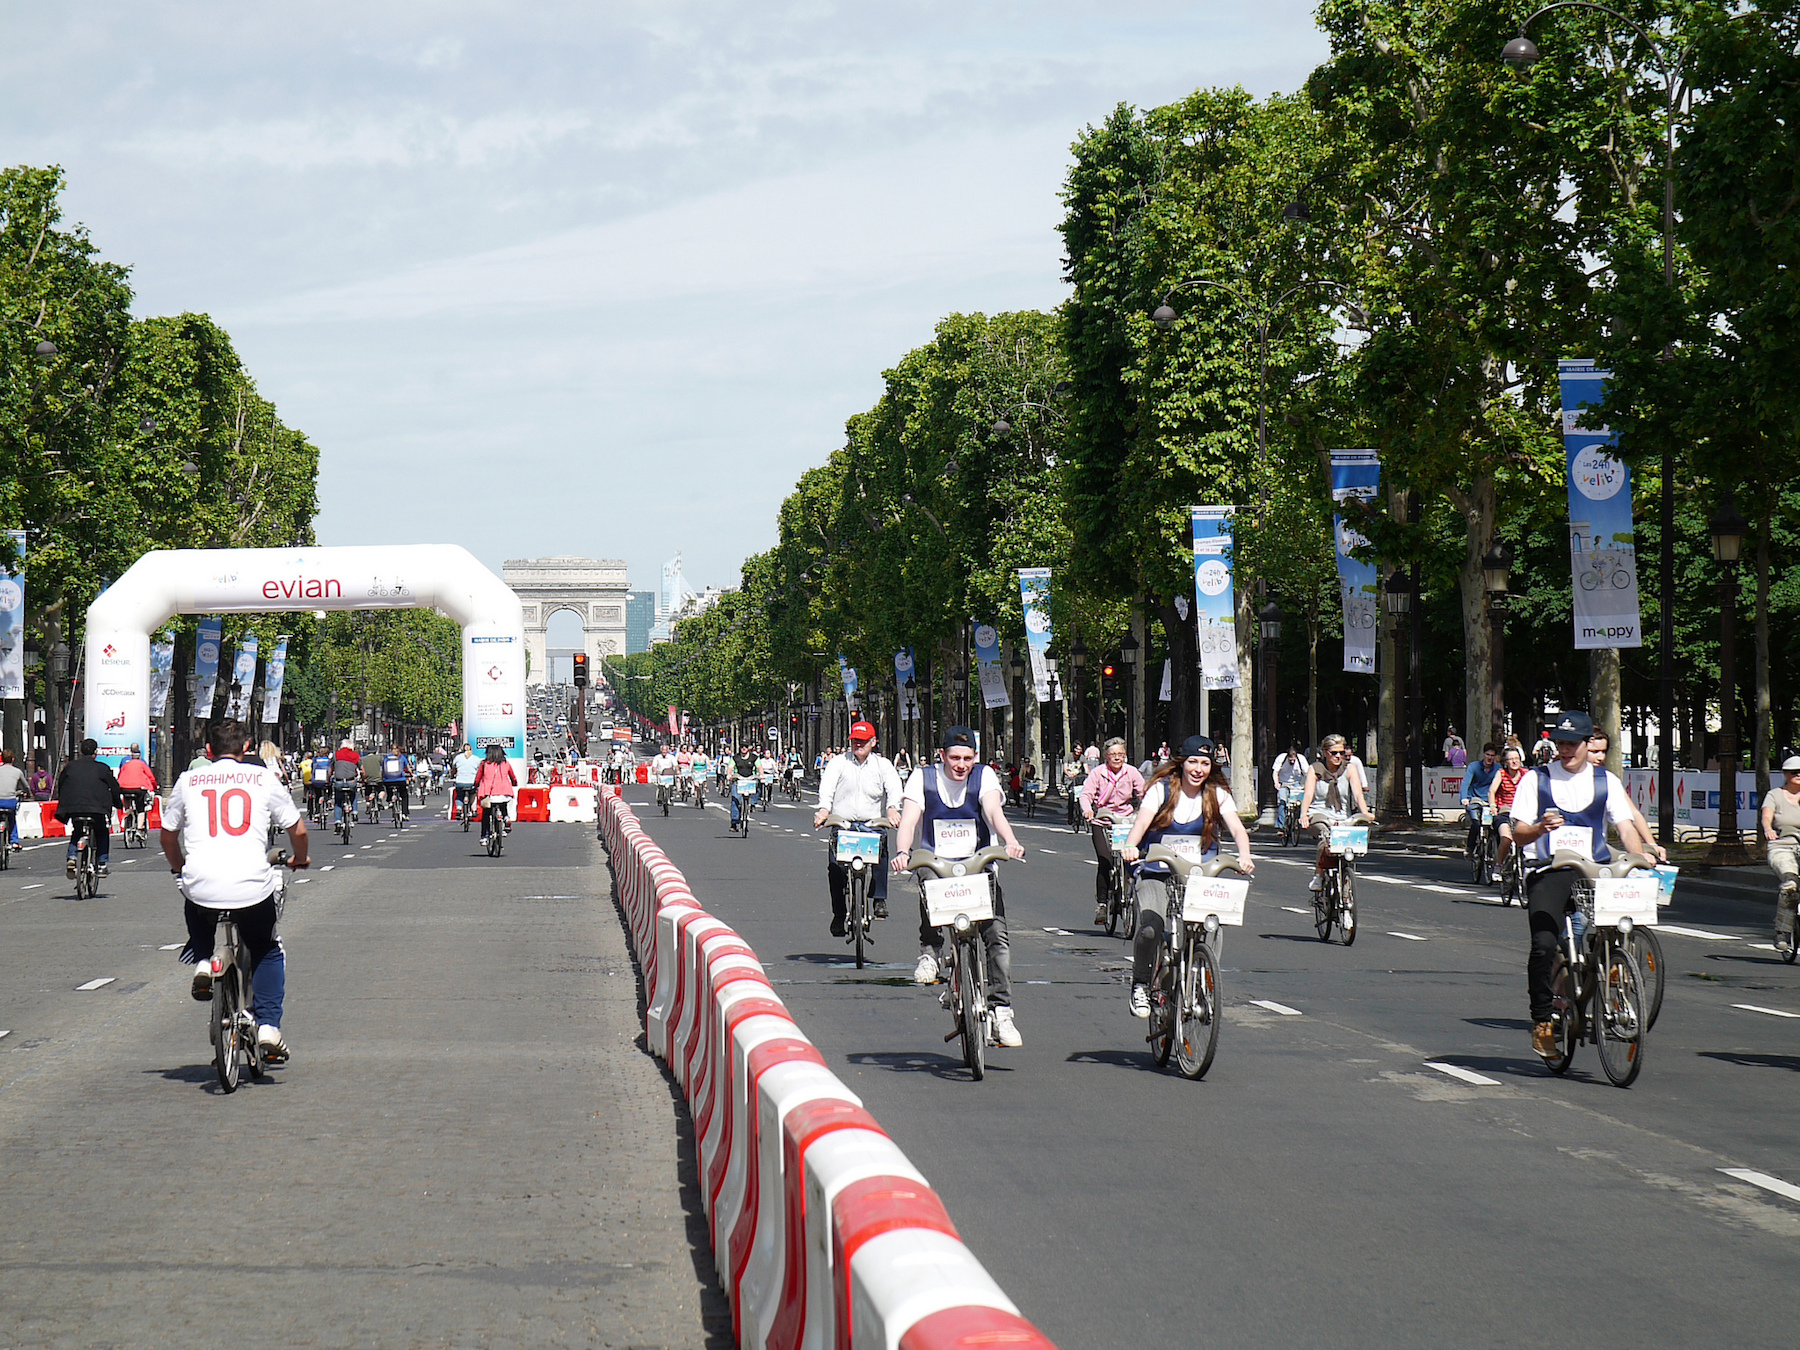 Quand la plus belle avenue se transforme en piste cyclable